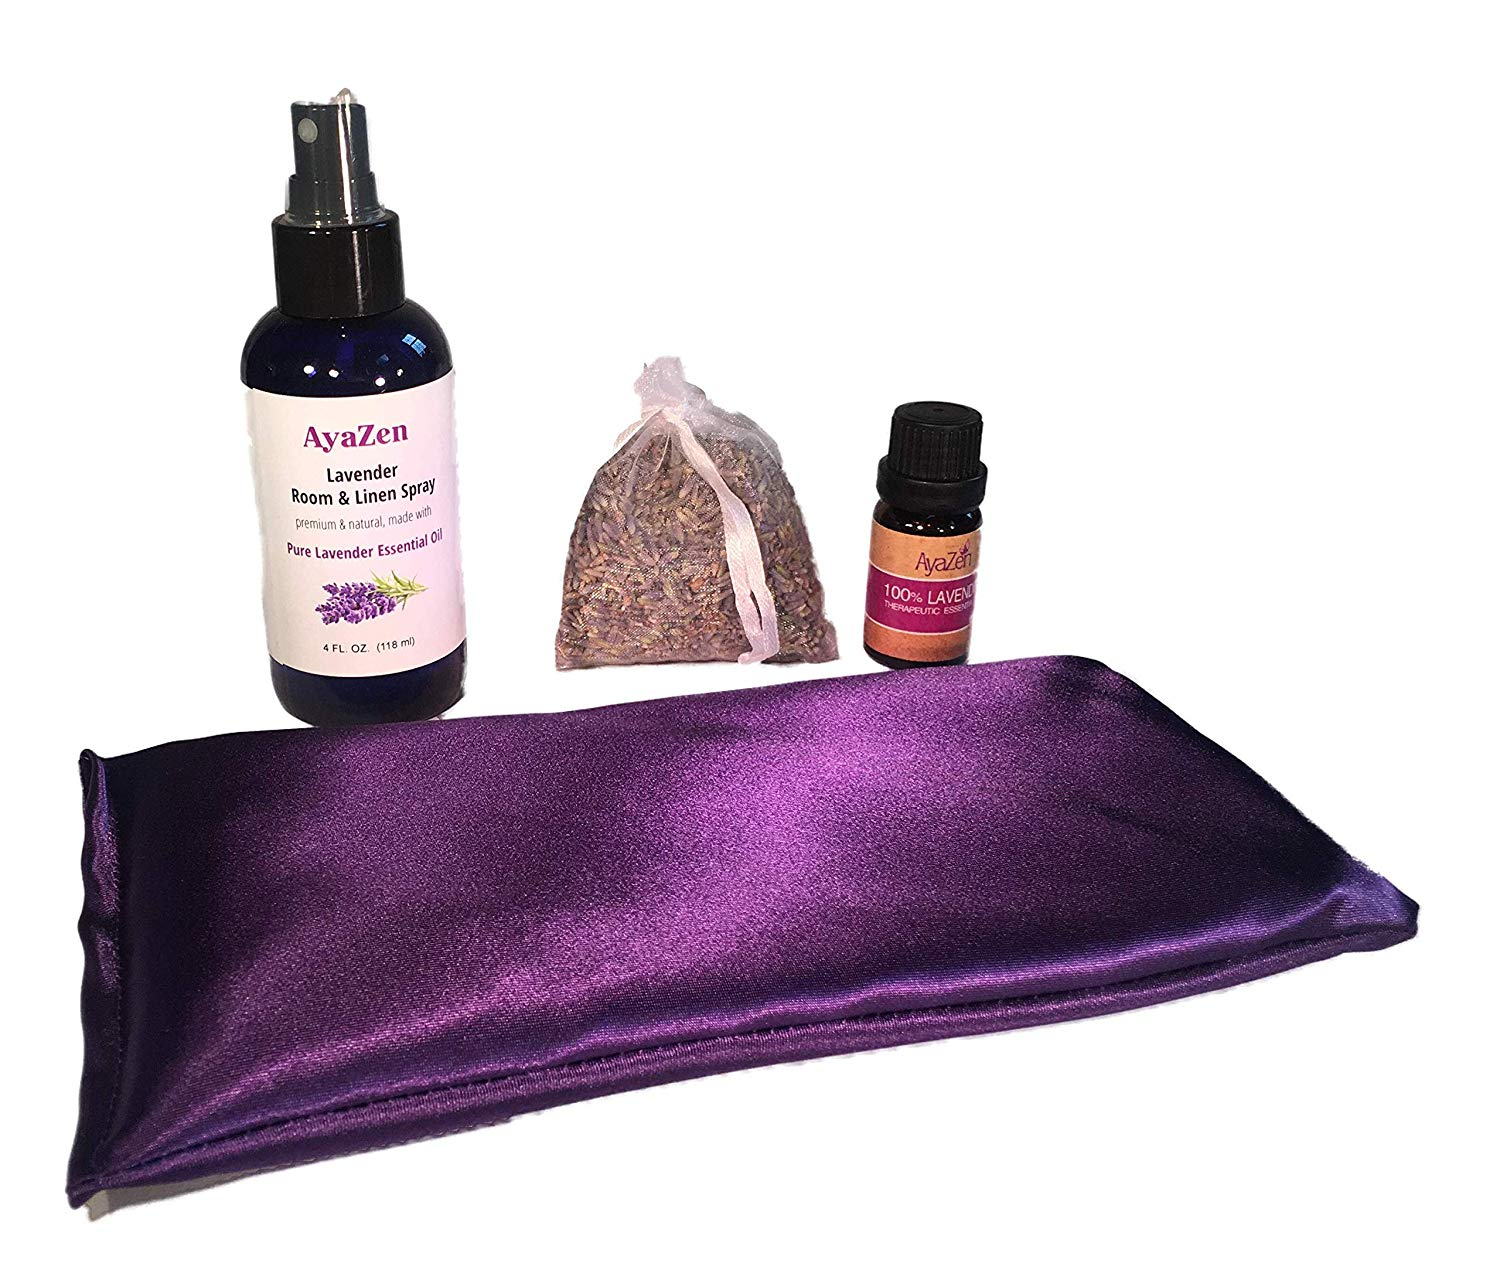 Lavender Aromatherapy & Relaxation Gift Set